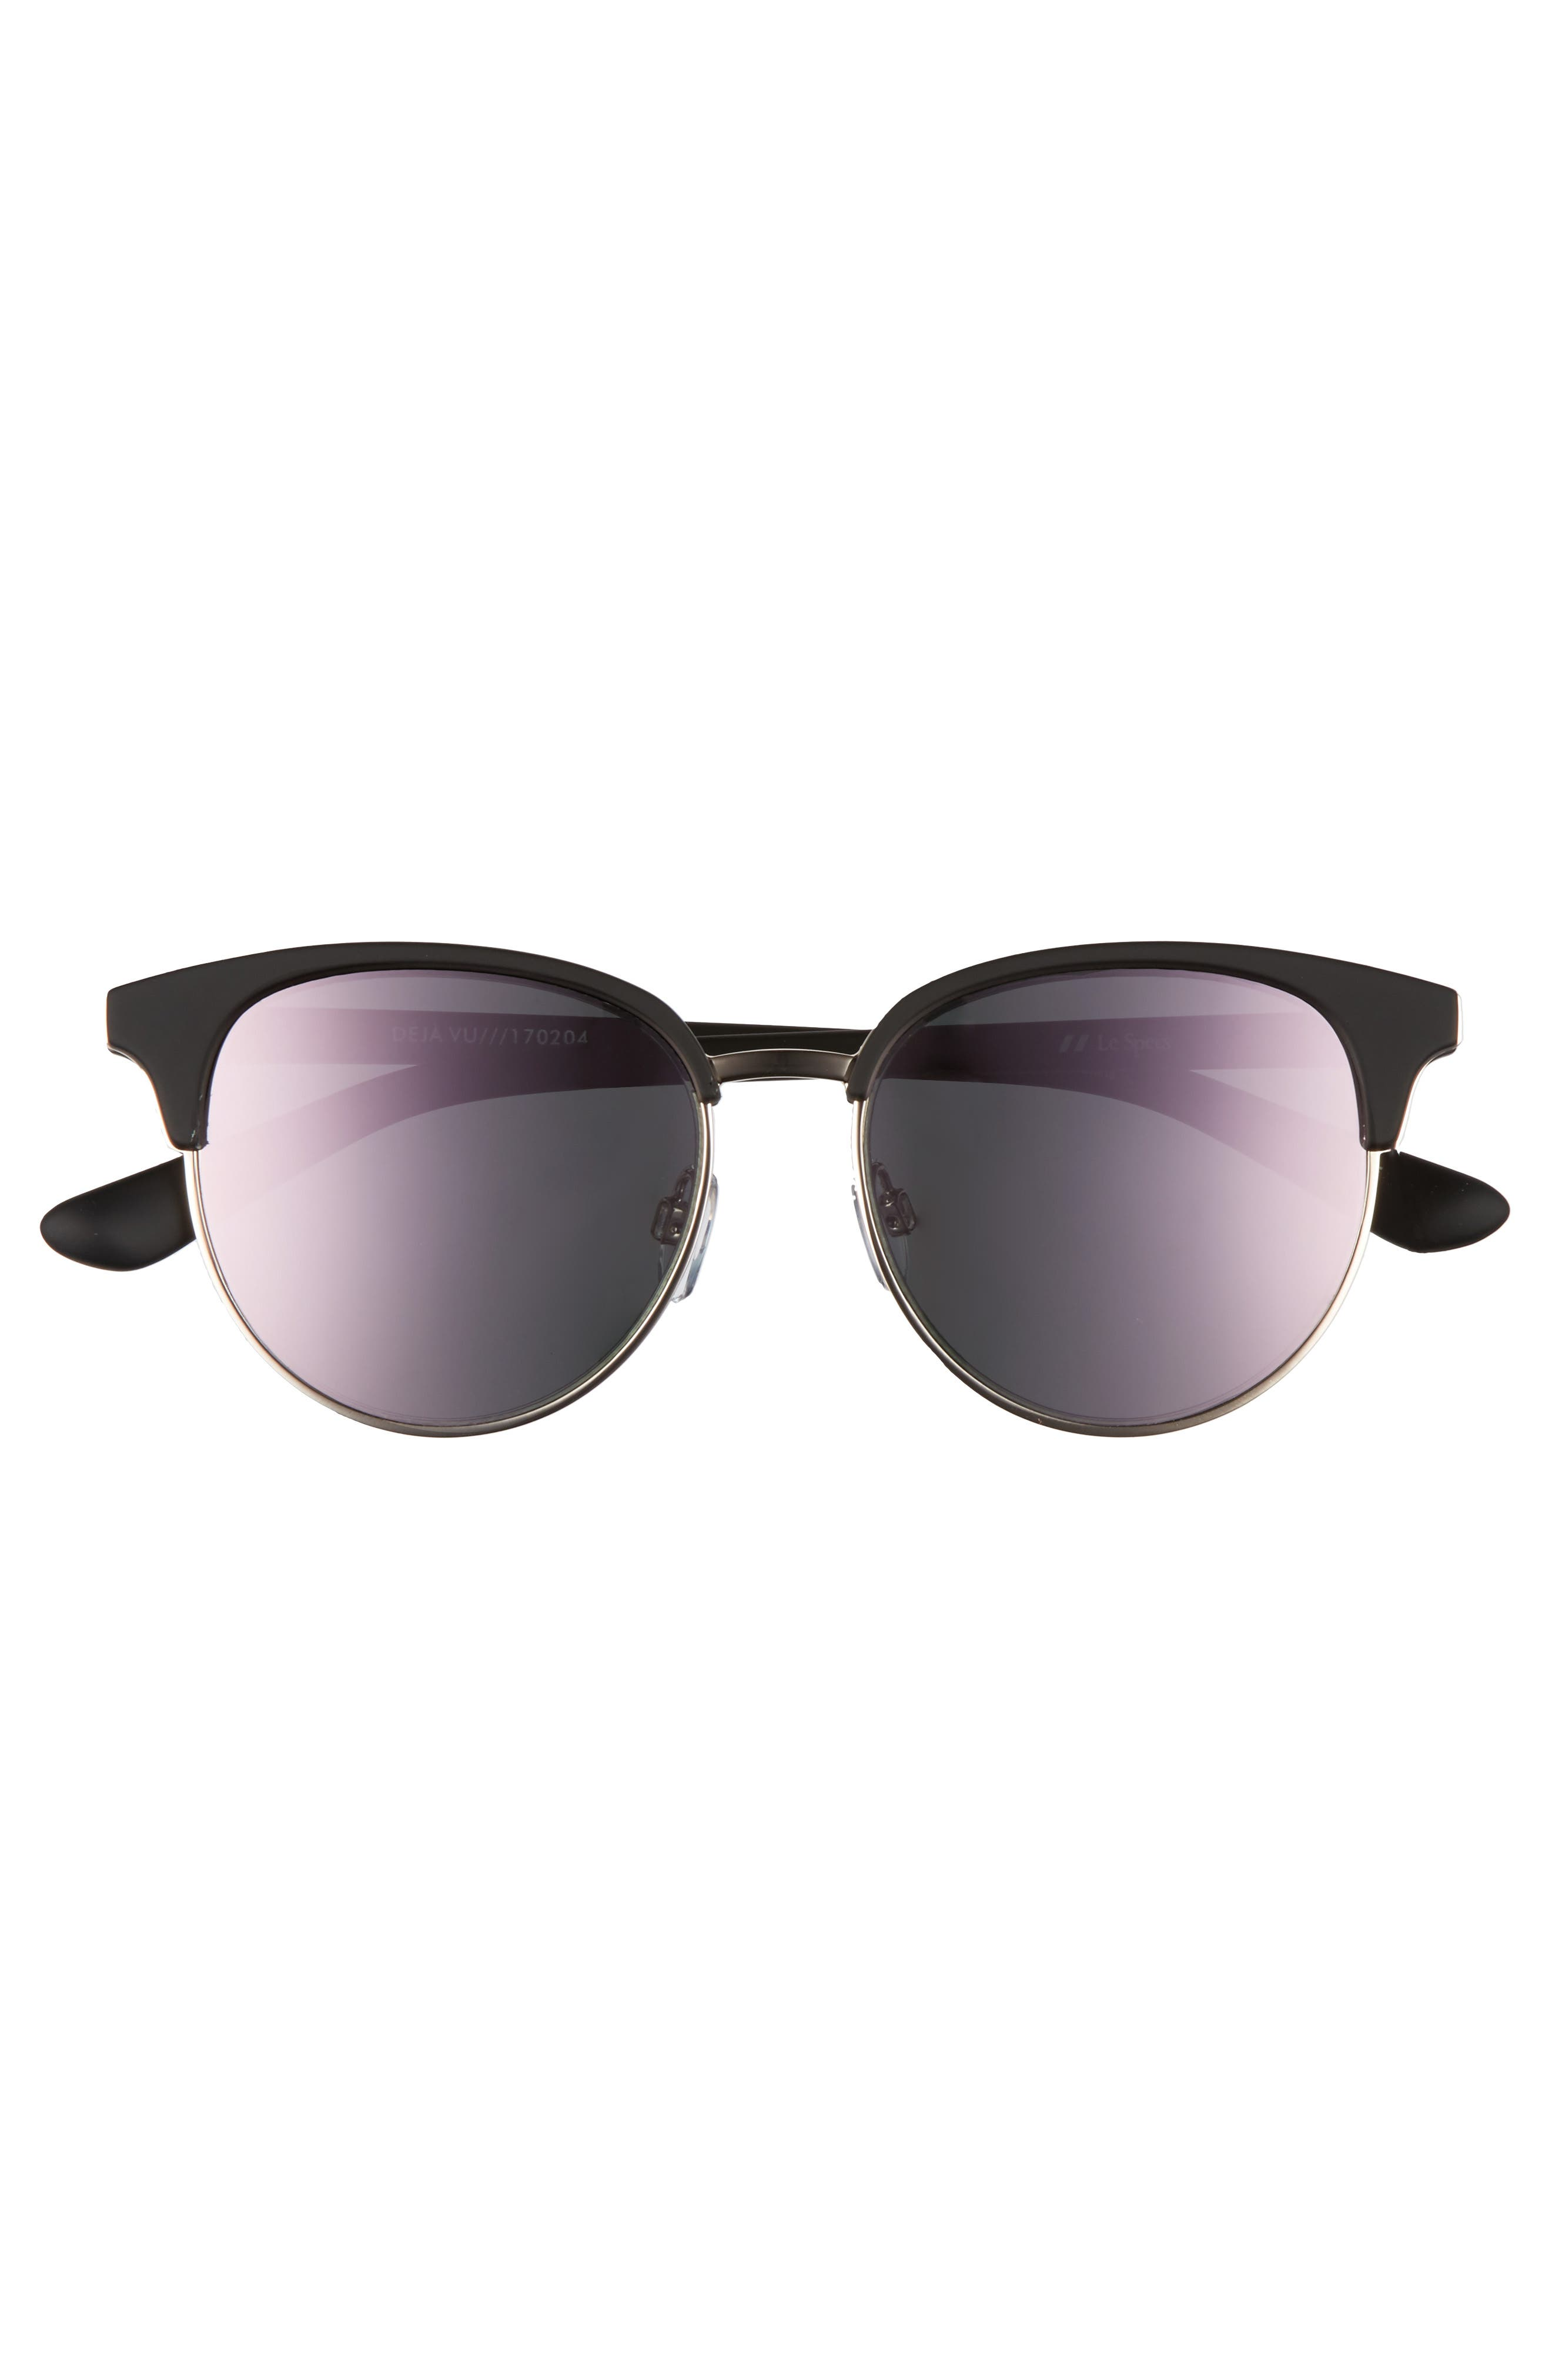 Deja Vu 51mm Round Sunglasses,                             Alternate thumbnail 3, color,                             Black Rubber